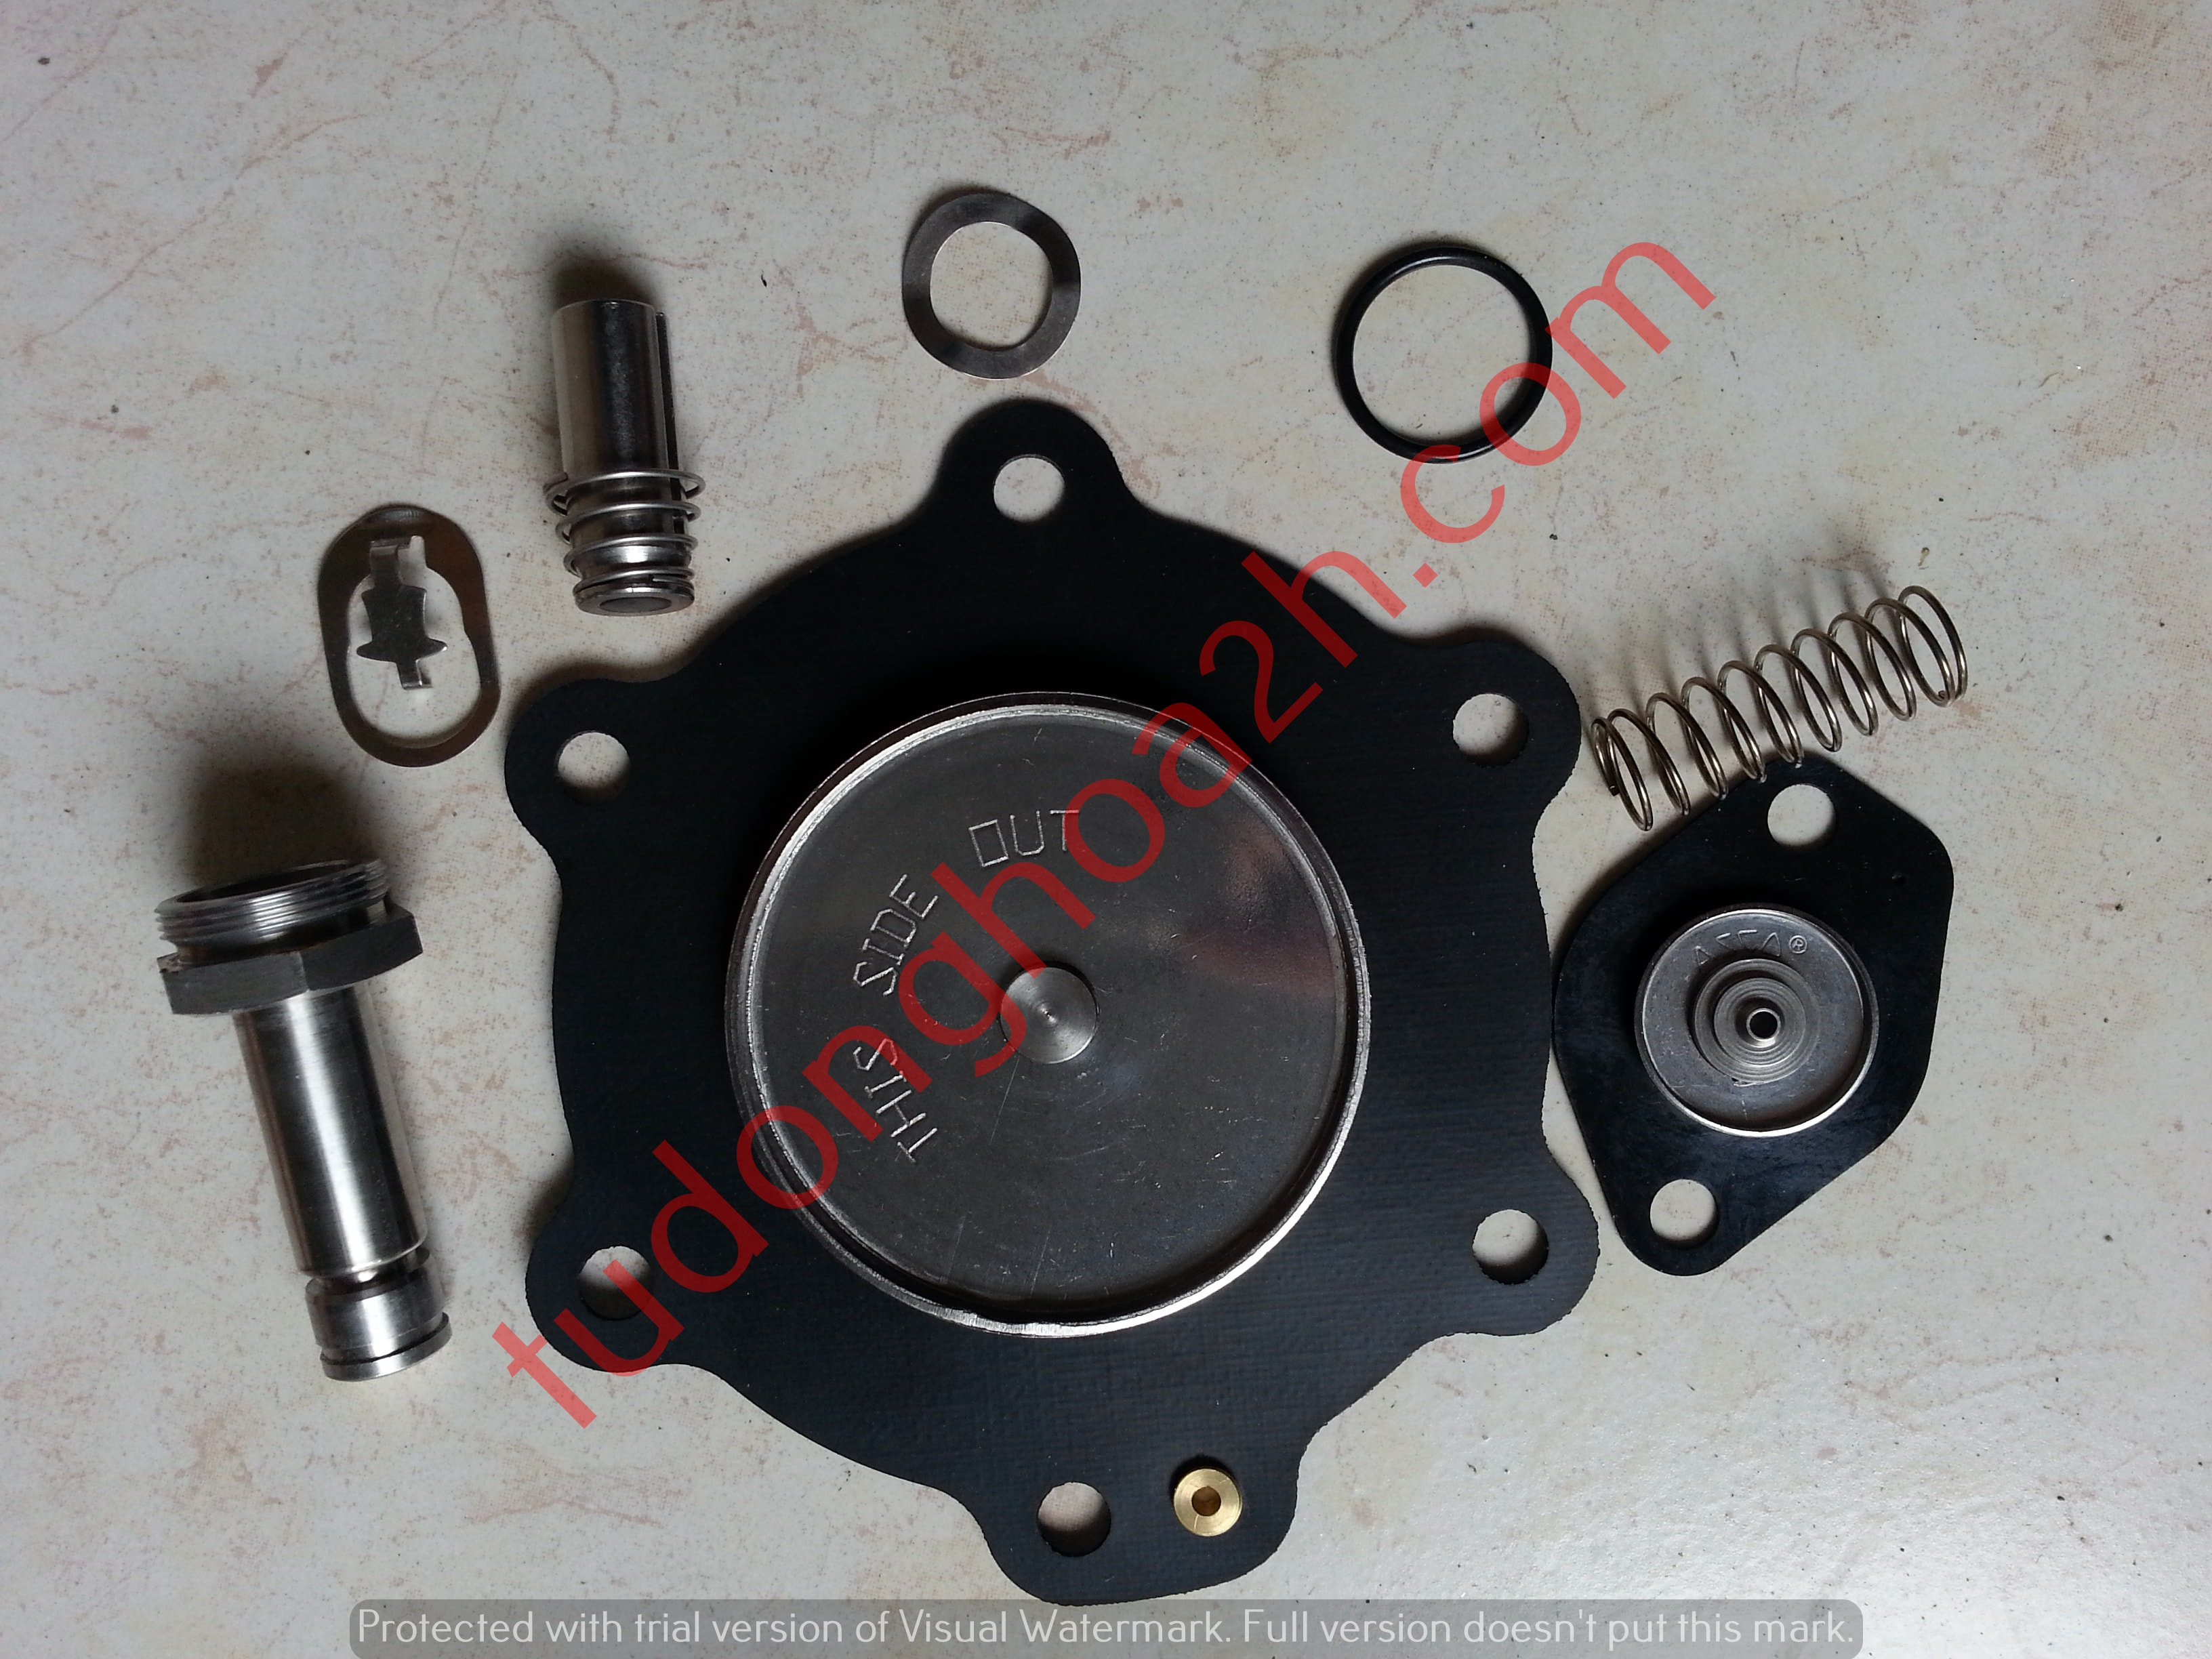 Bộ repair kits van SCG353A047